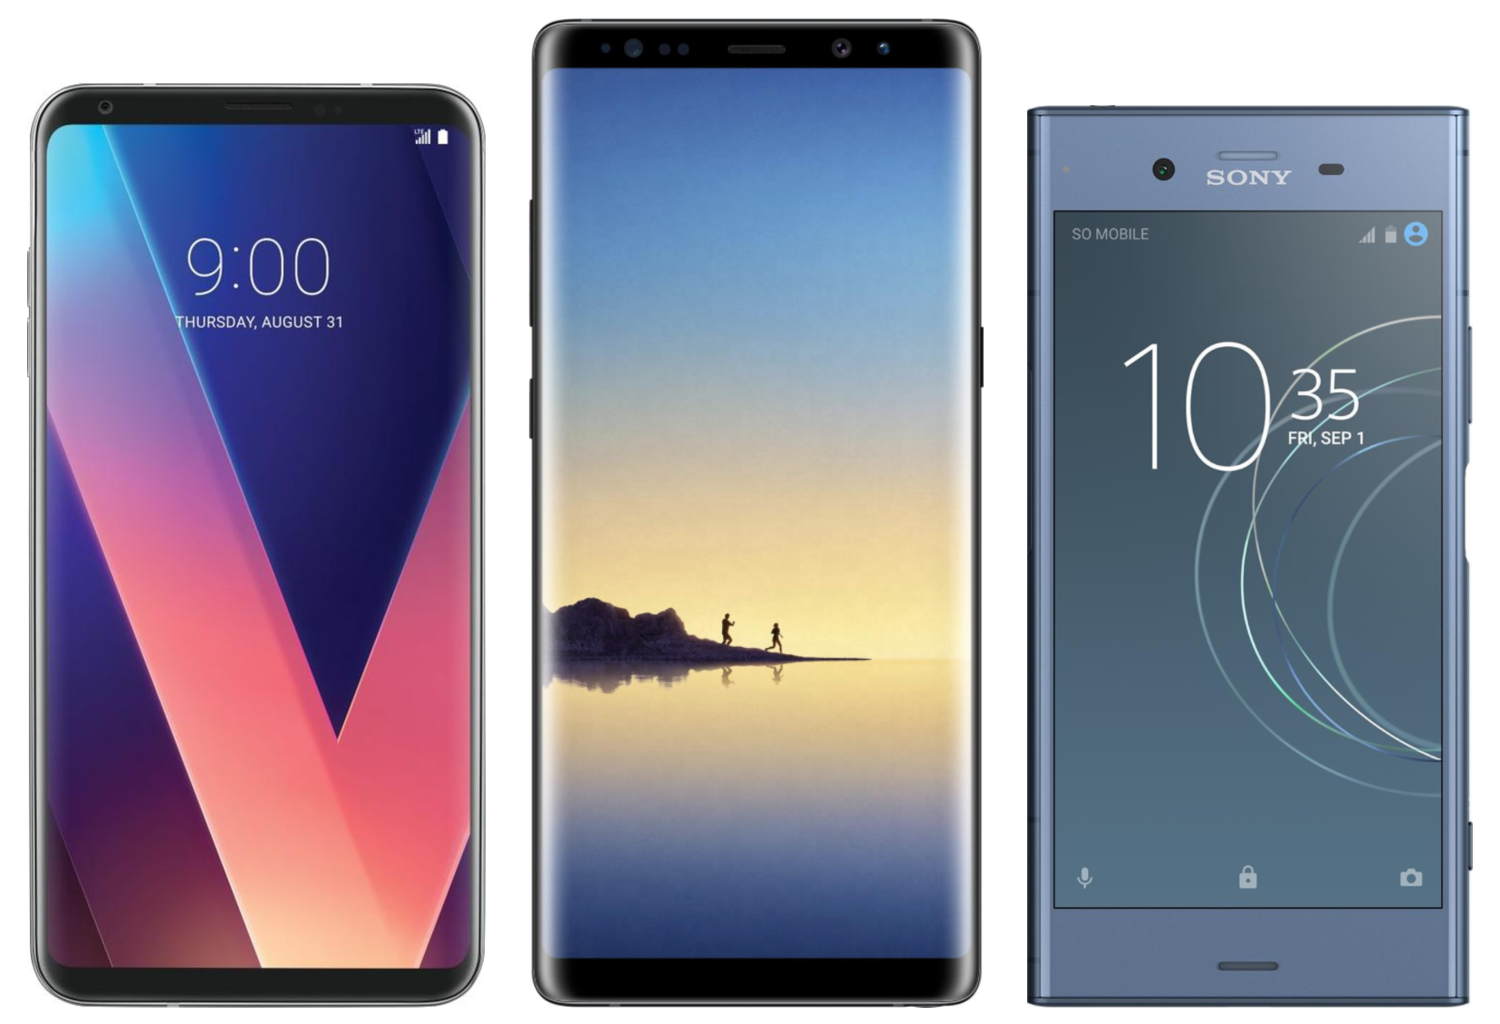 LG V30, Samsung Galaxy Note 8 and Sony Xperia XZ1_real size comparison.png